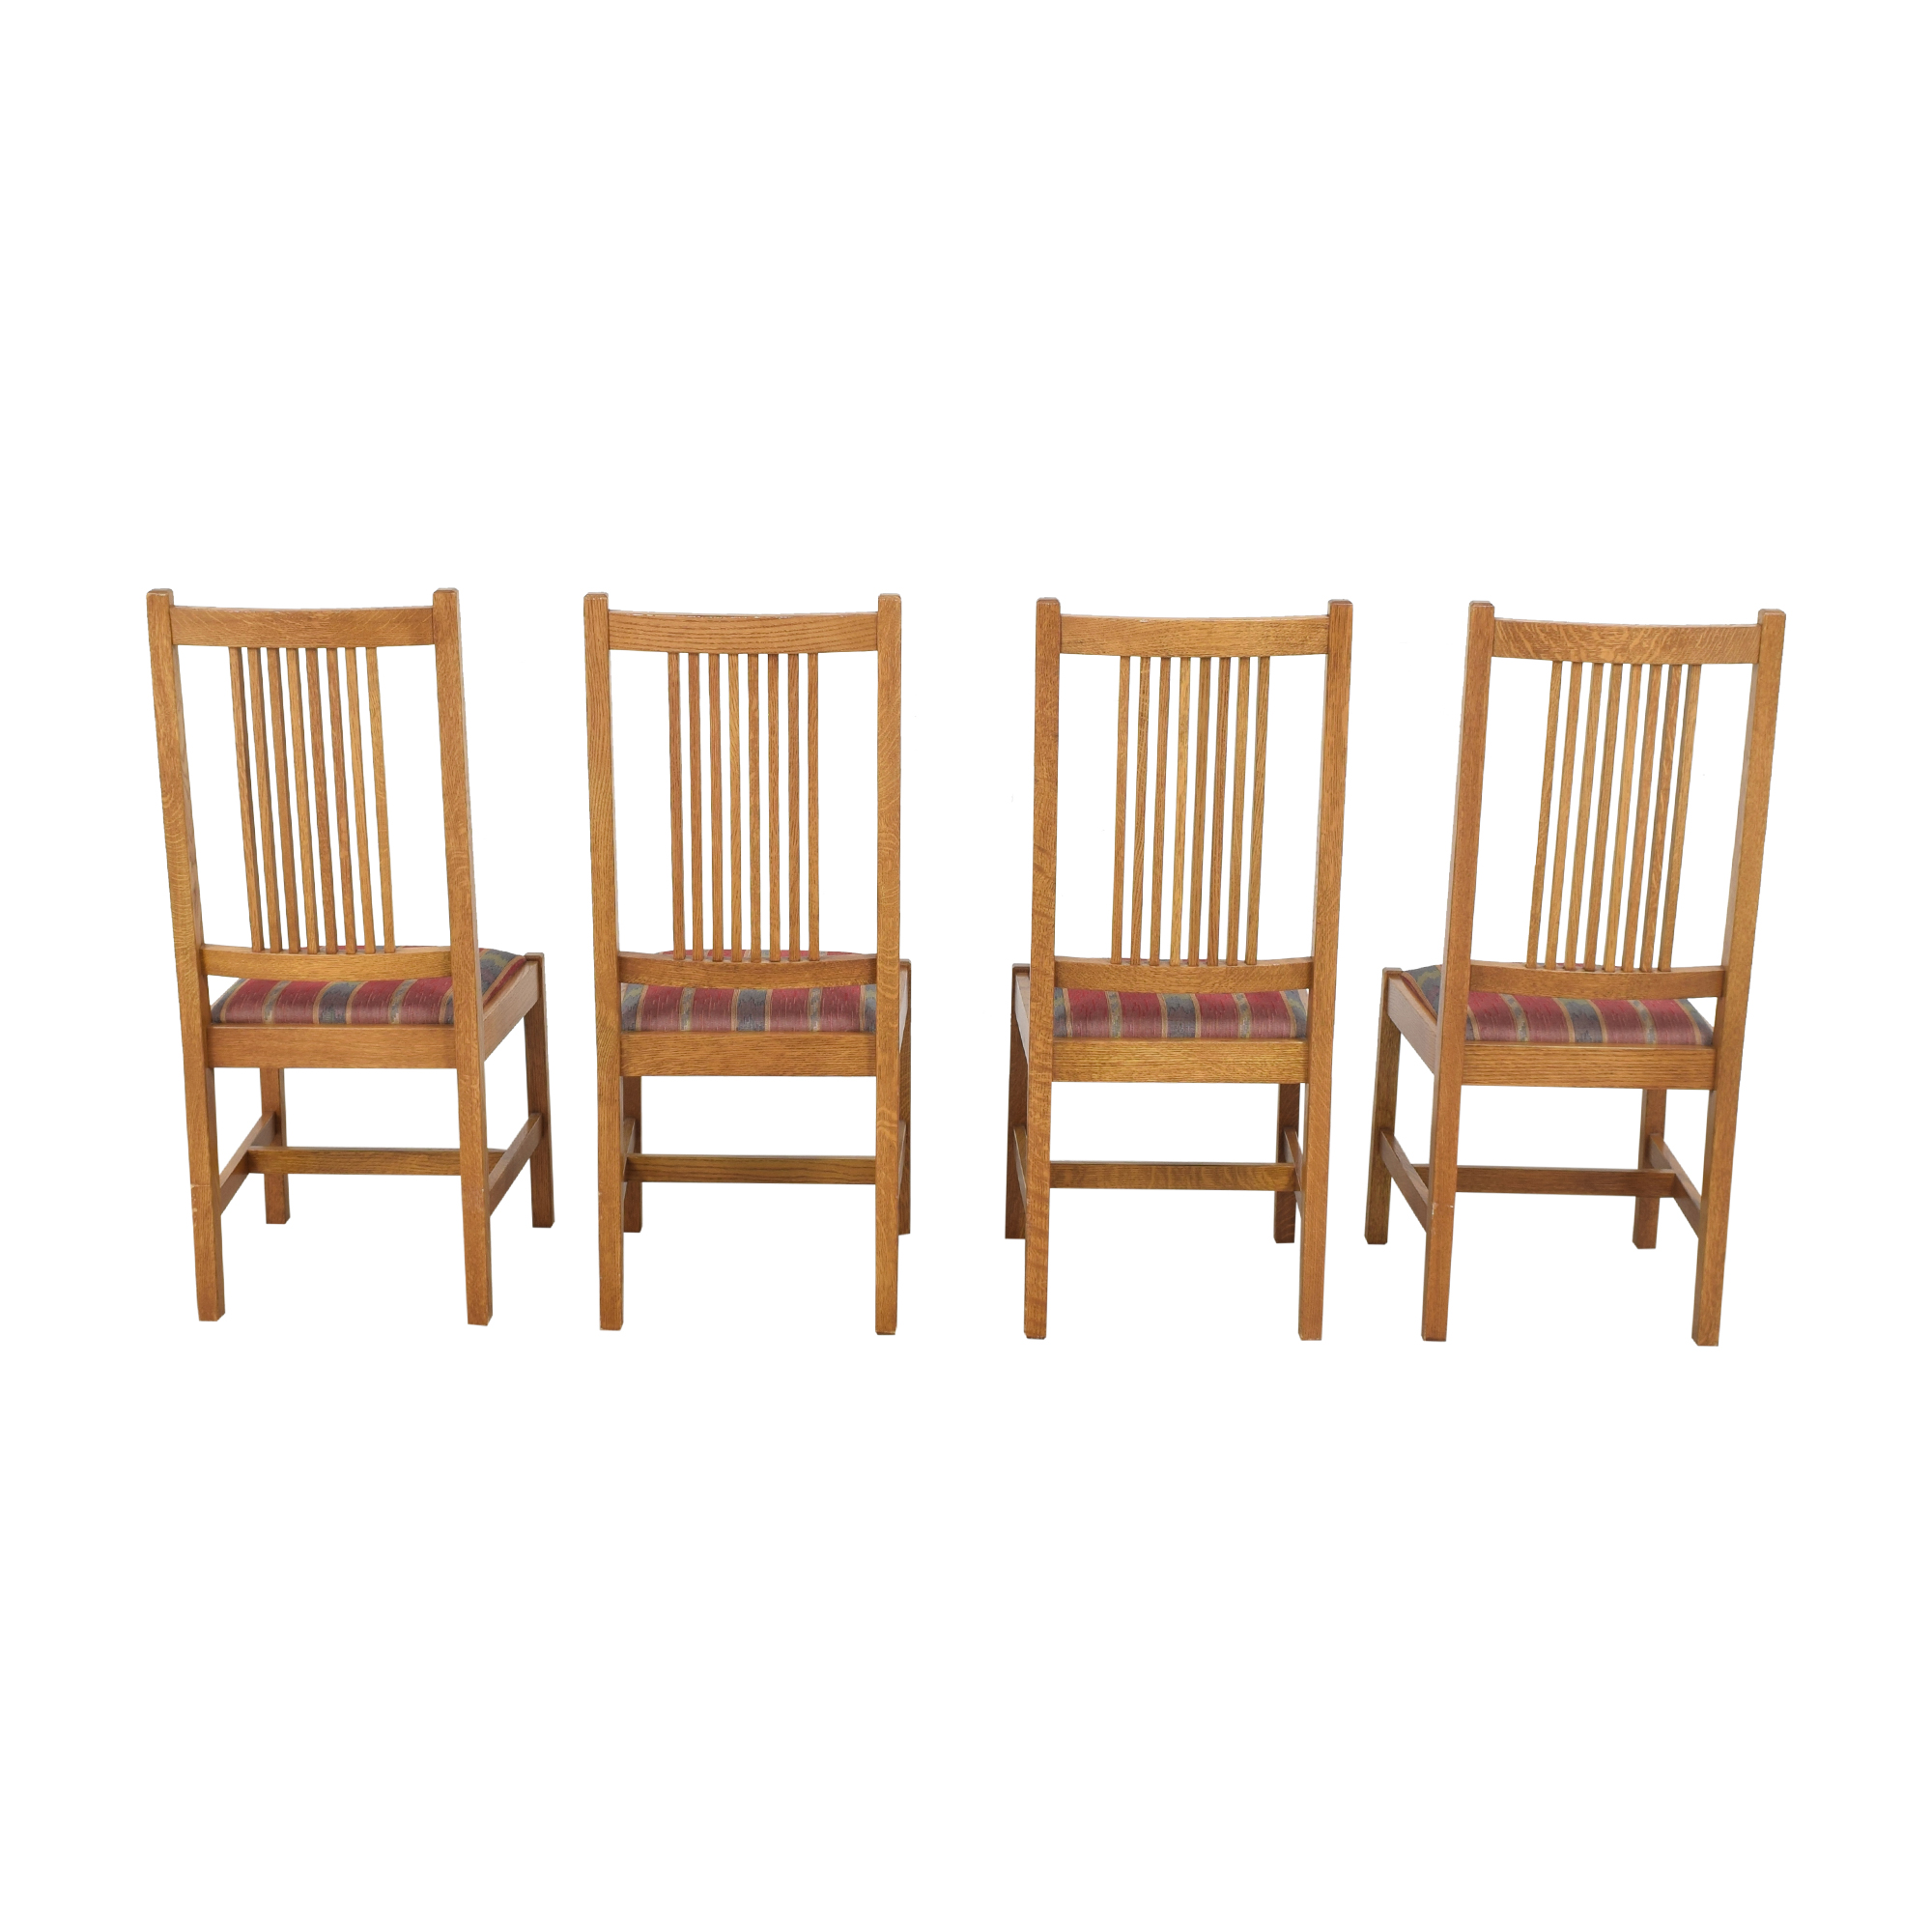 buy Stickley Furniture Stickley Furniture Mission Side Chairs online